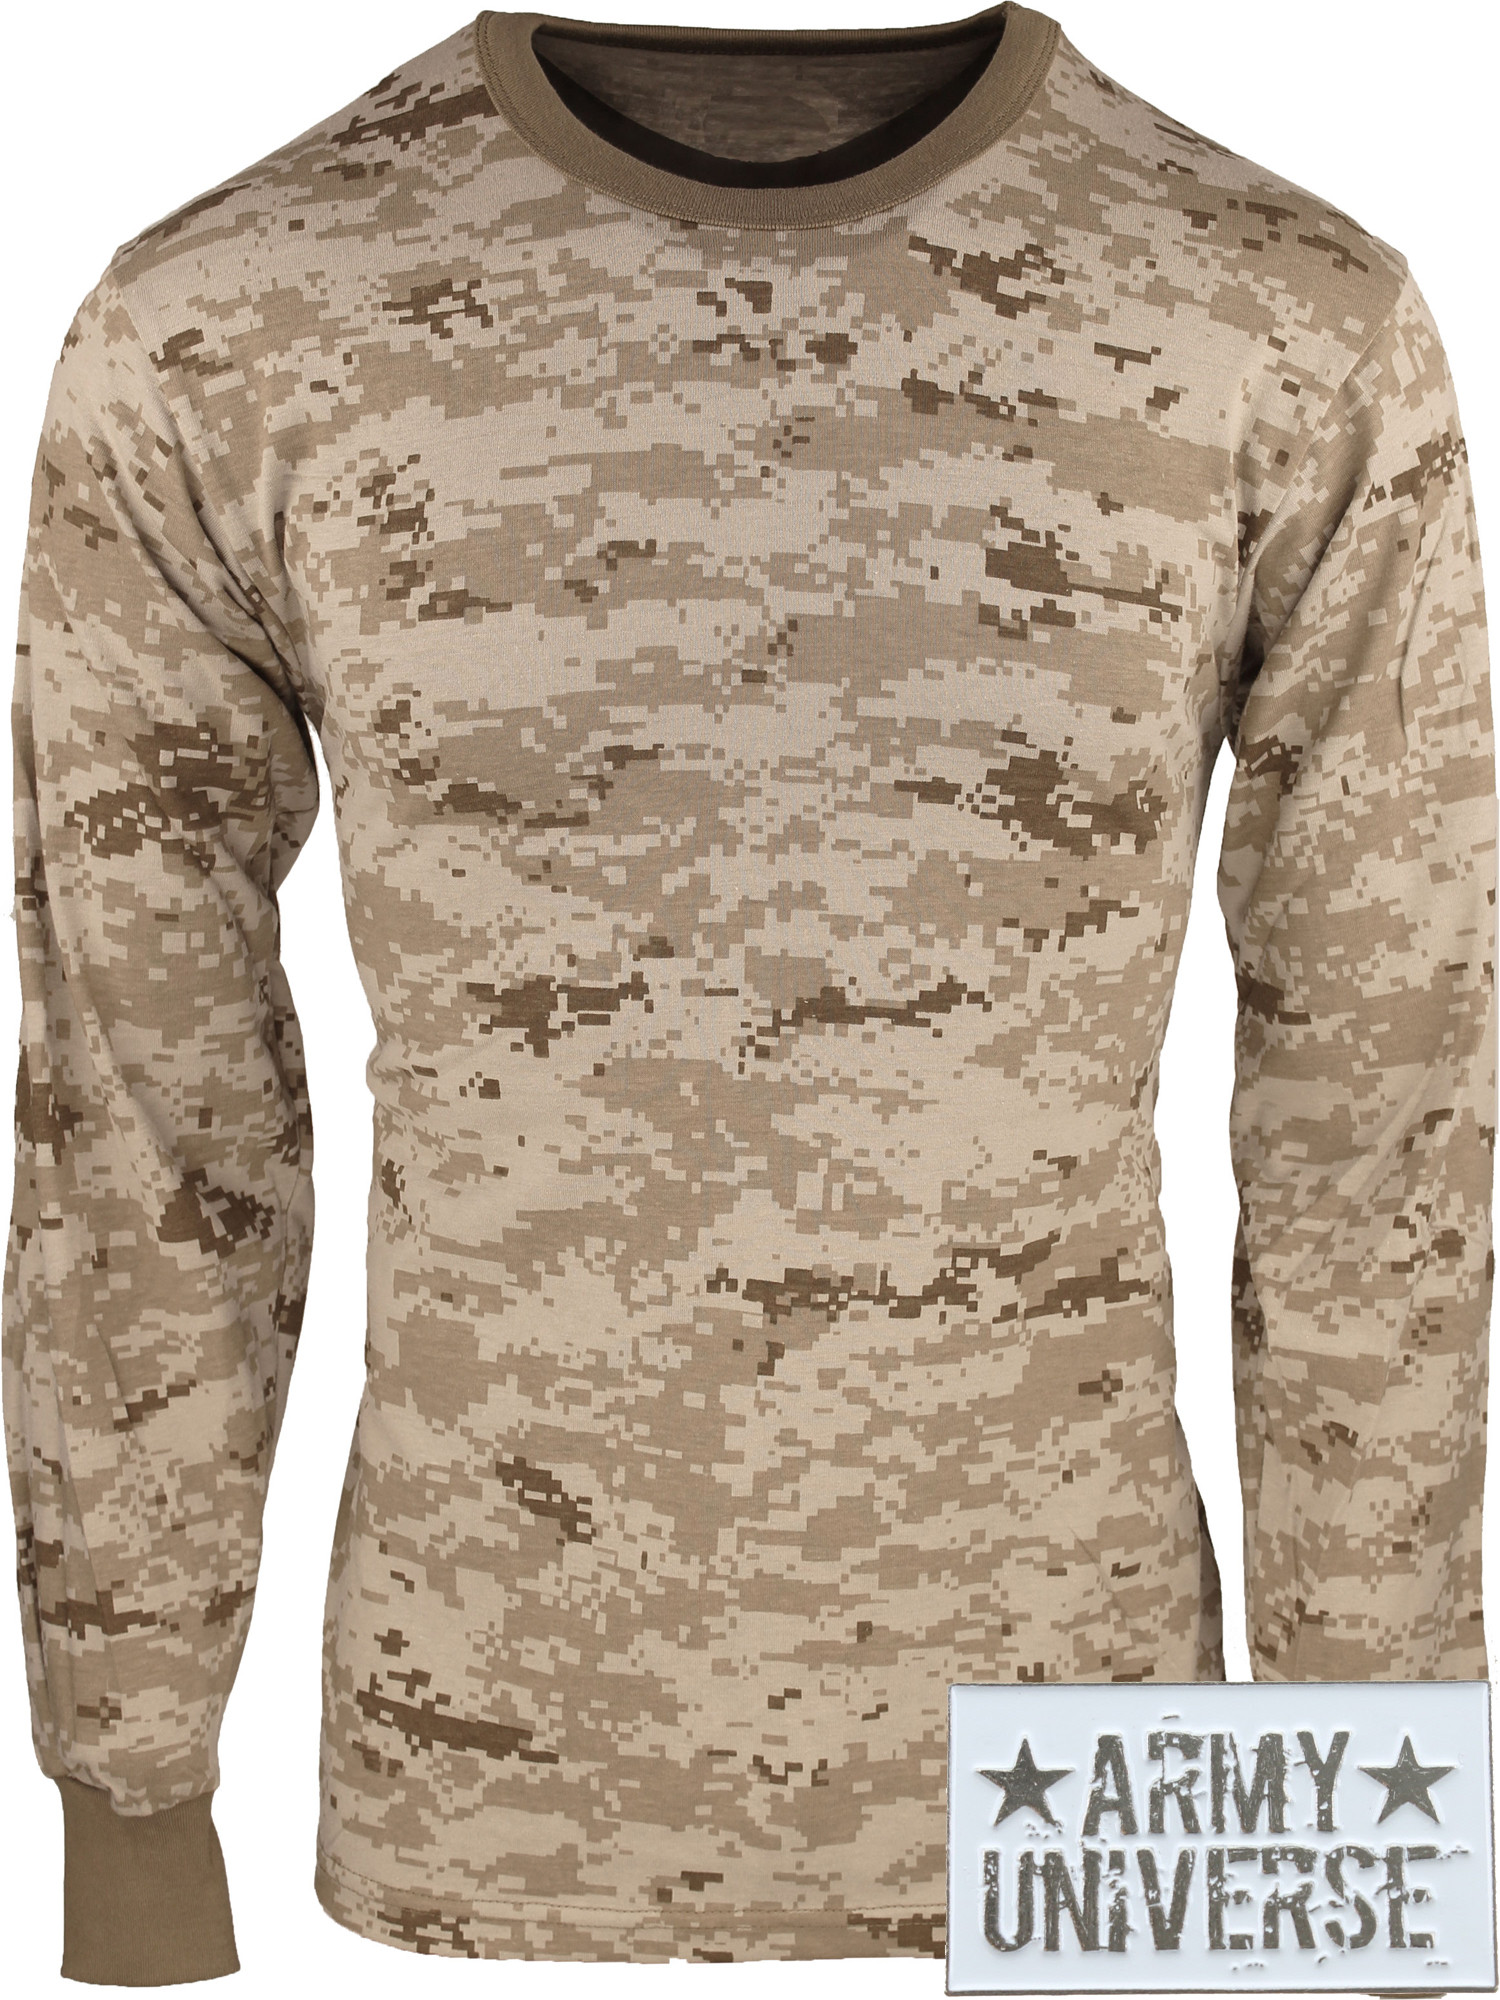 ... Desert Digital Camouflage Military Crewneck Long Sleeve T Shirt w   ArmyUniverse® Pin ... 2d6a7905ea2